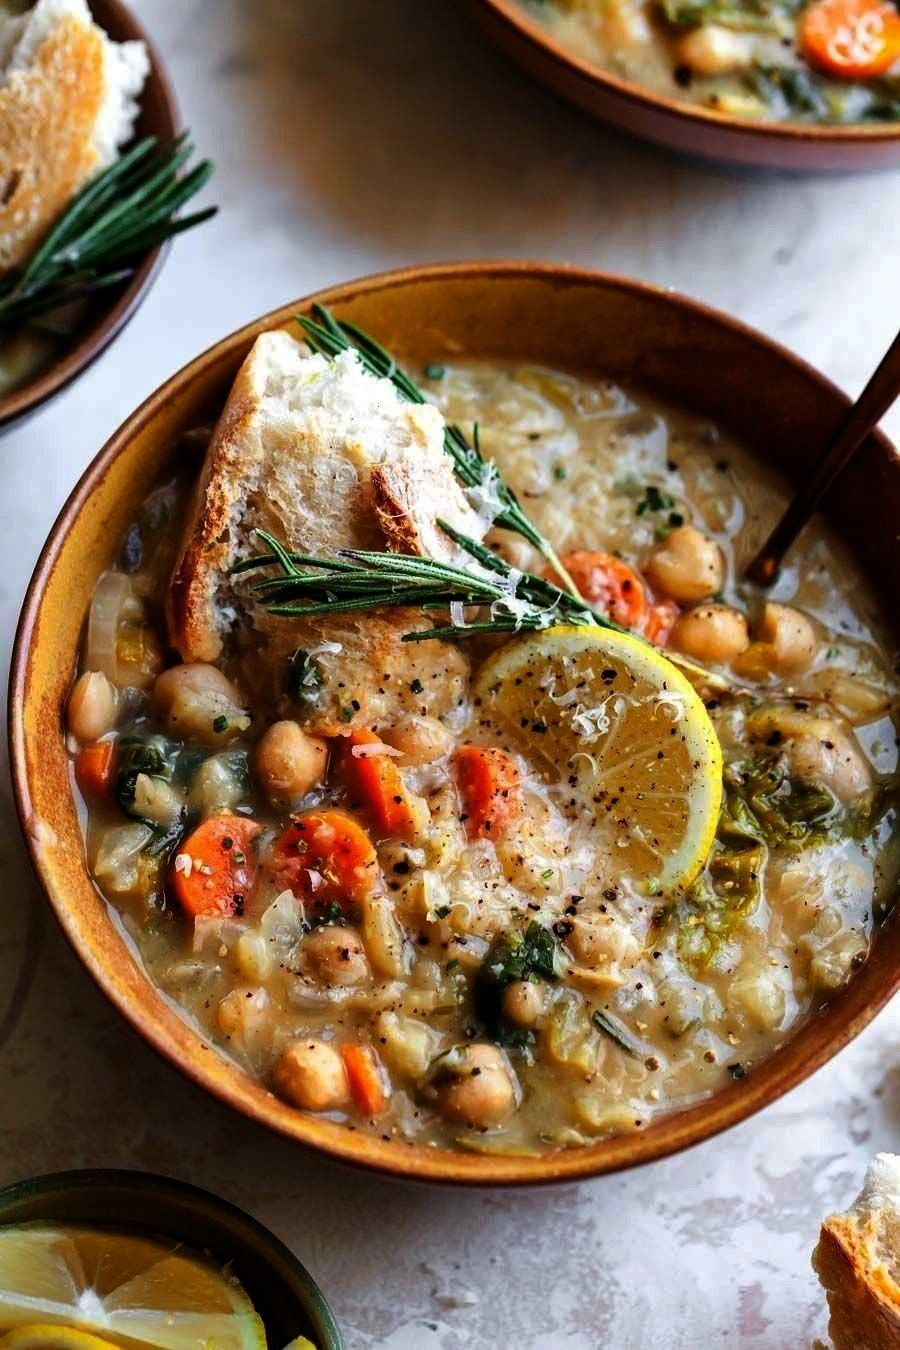 and Lemon Soup is a vegetarian, fiber-filled meal ready in just 40 minutes. A one-pot meal perfect